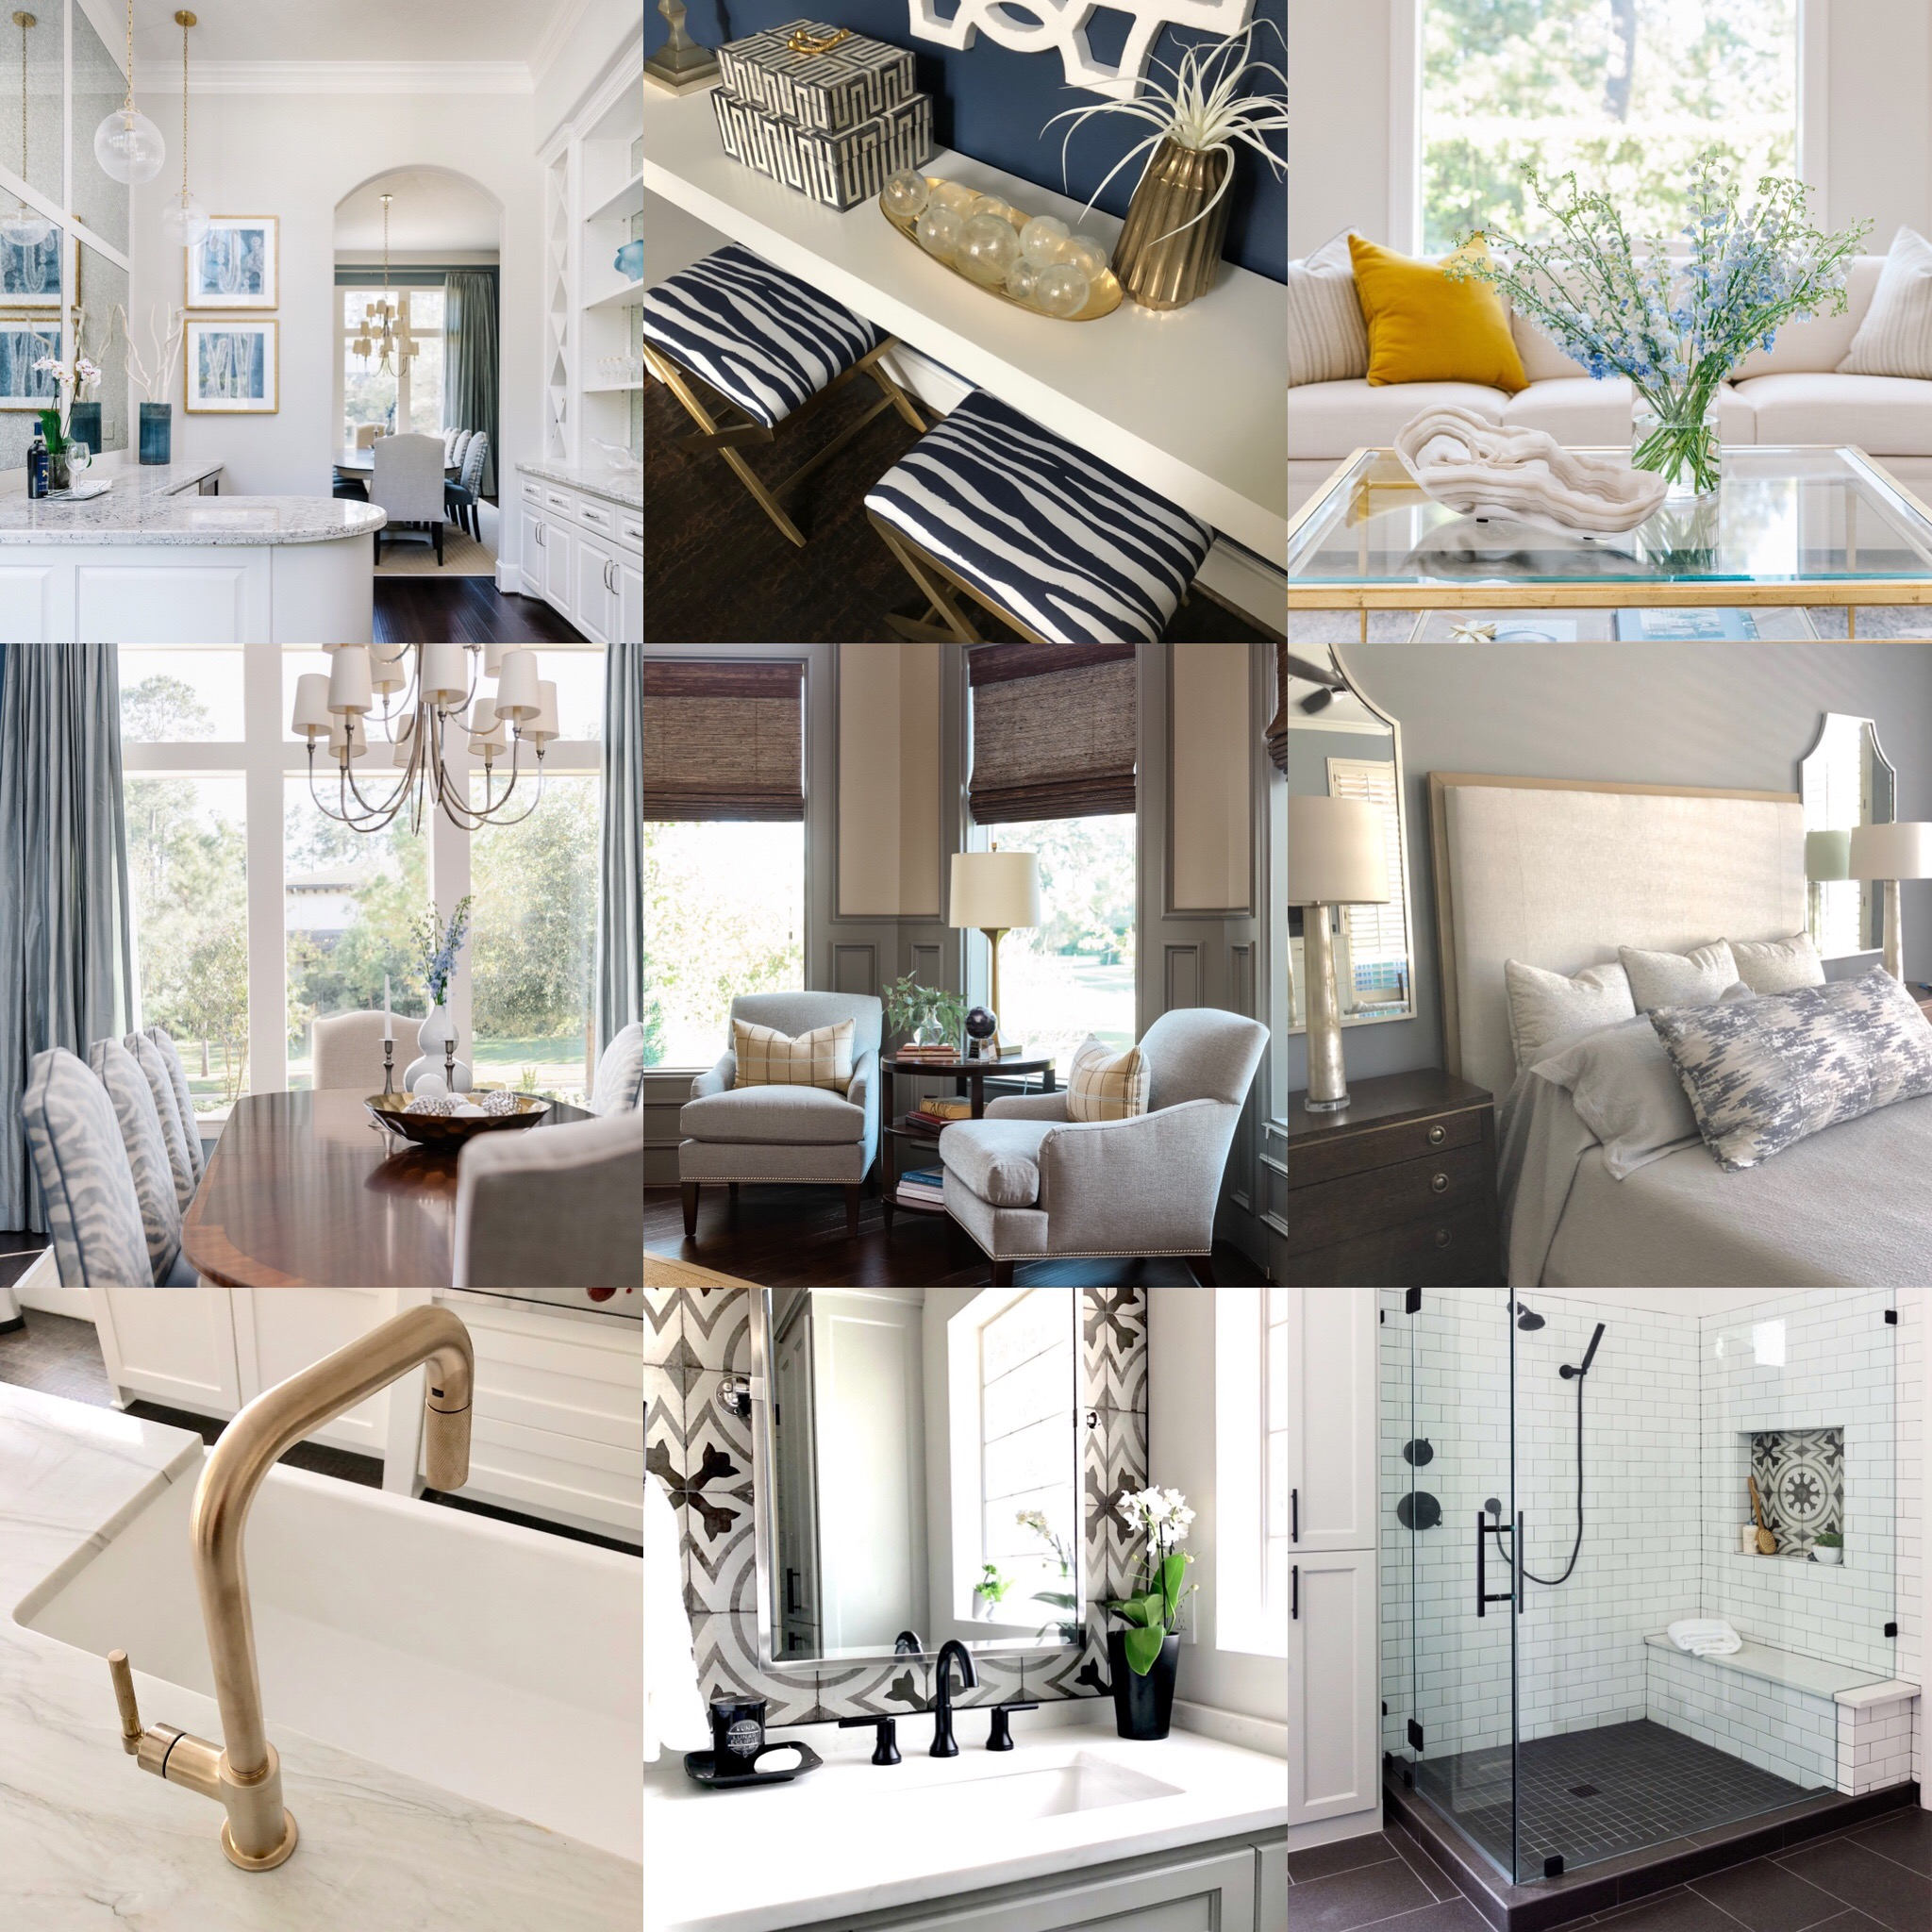 My Top 9 Project Images from Instagram - Carla Aston, Designer